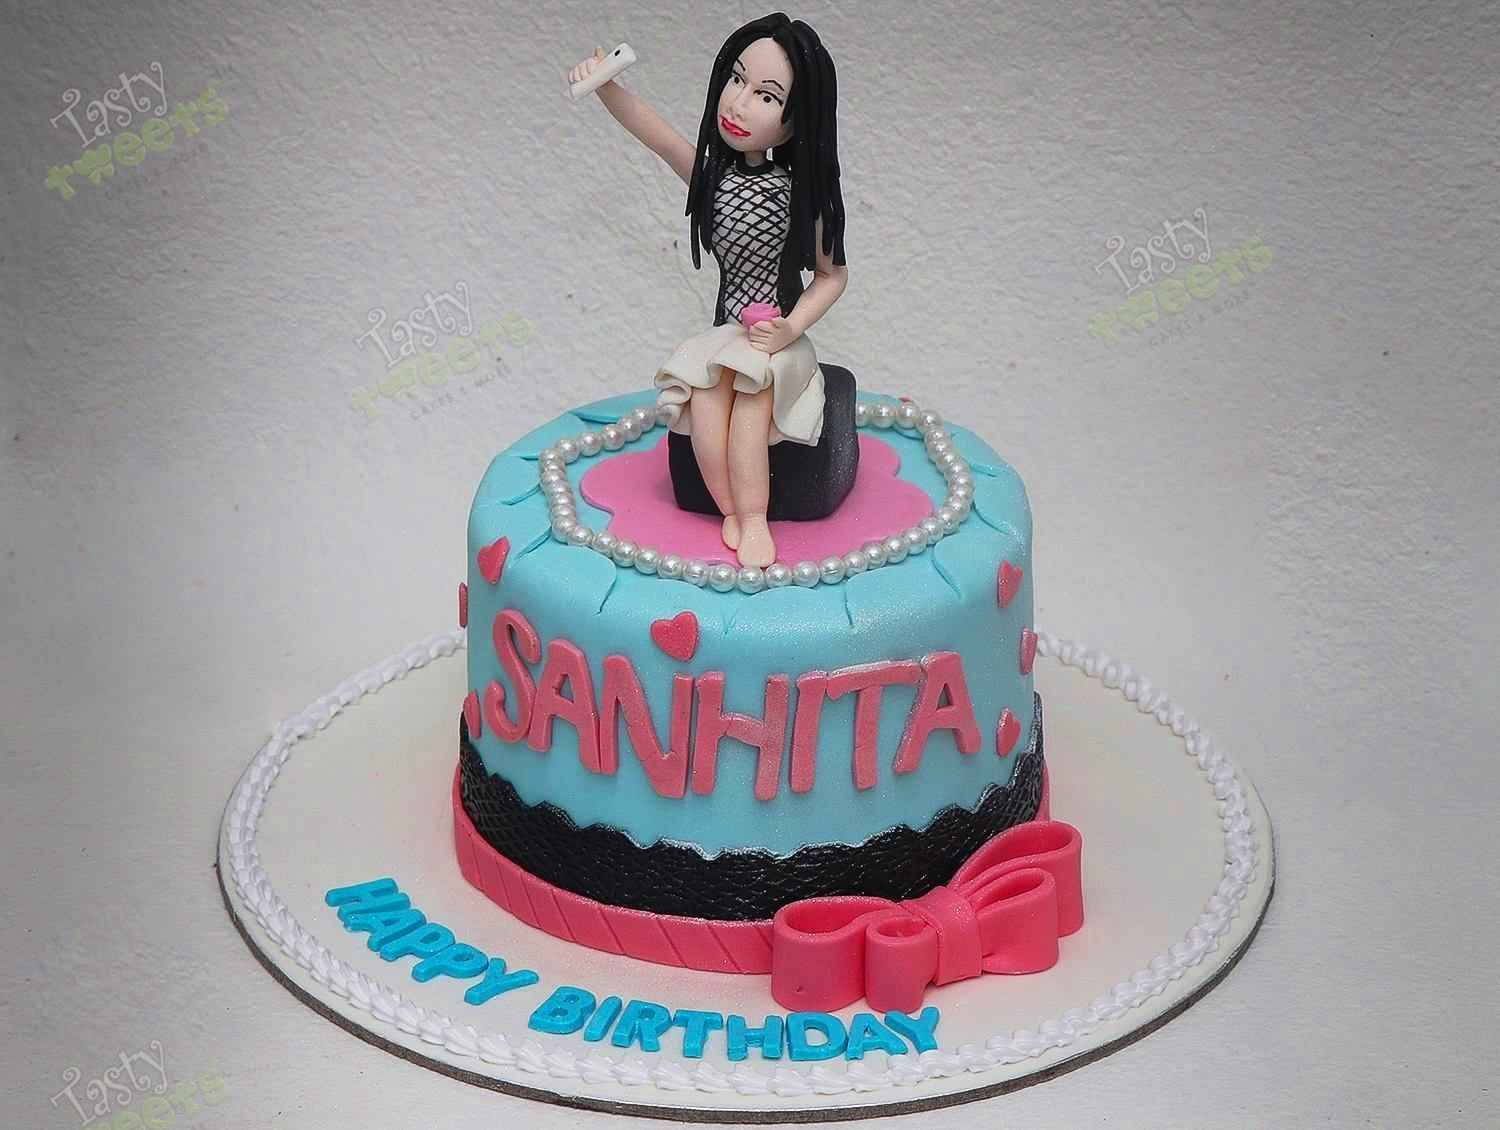 Pleasant Order Cakes Online In Gurgaon Cake Order In Gurgaon Funny Birthday Cards Online Aeocydamsfinfo